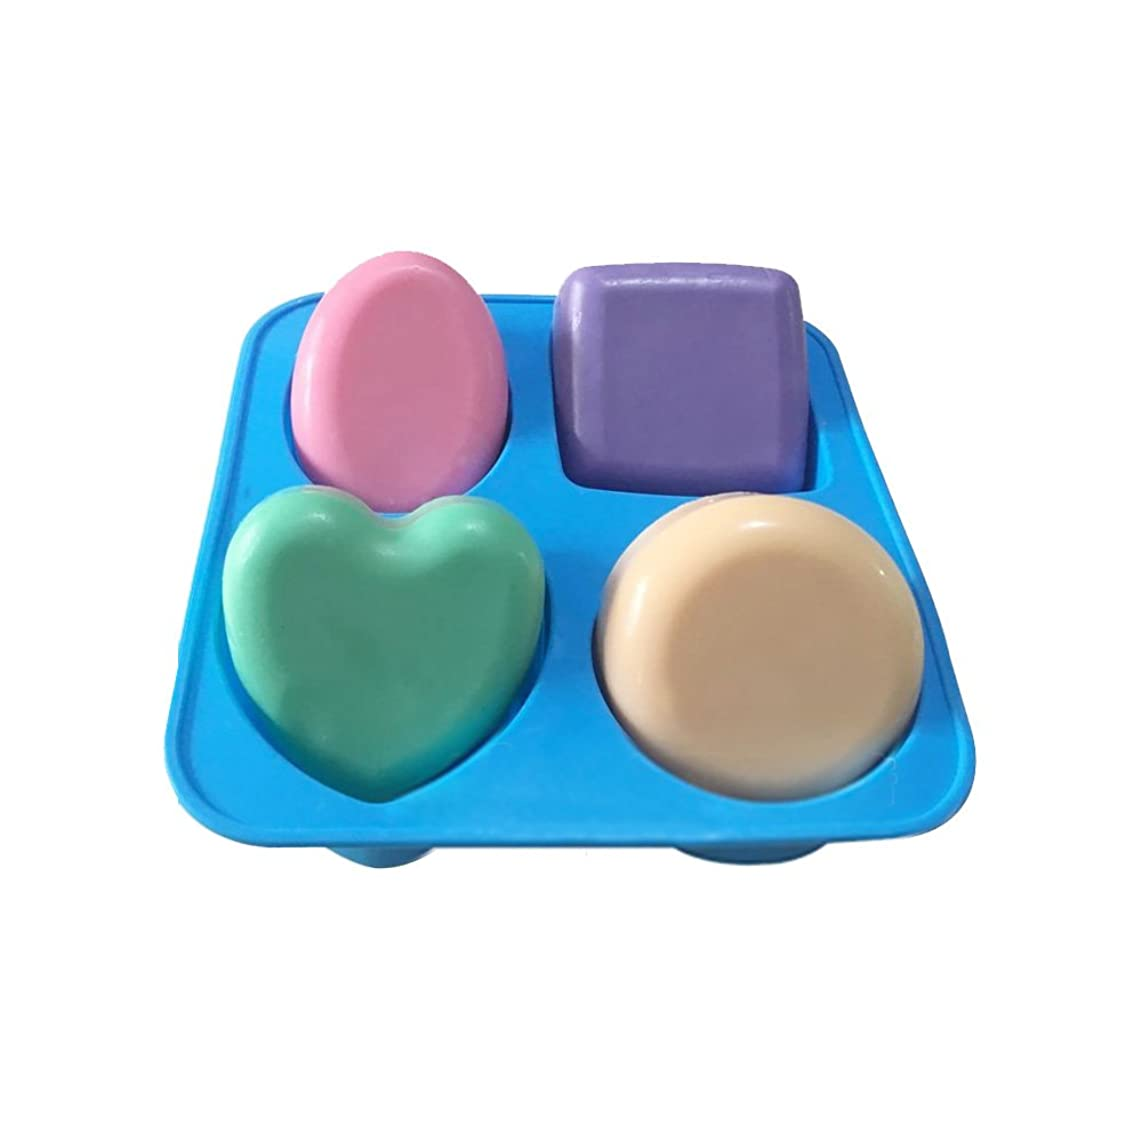 X-Haibei Basic Plain Square Heart Oval Round Soap Bar Silicone Mold Candle Making for Homemade me574548448341